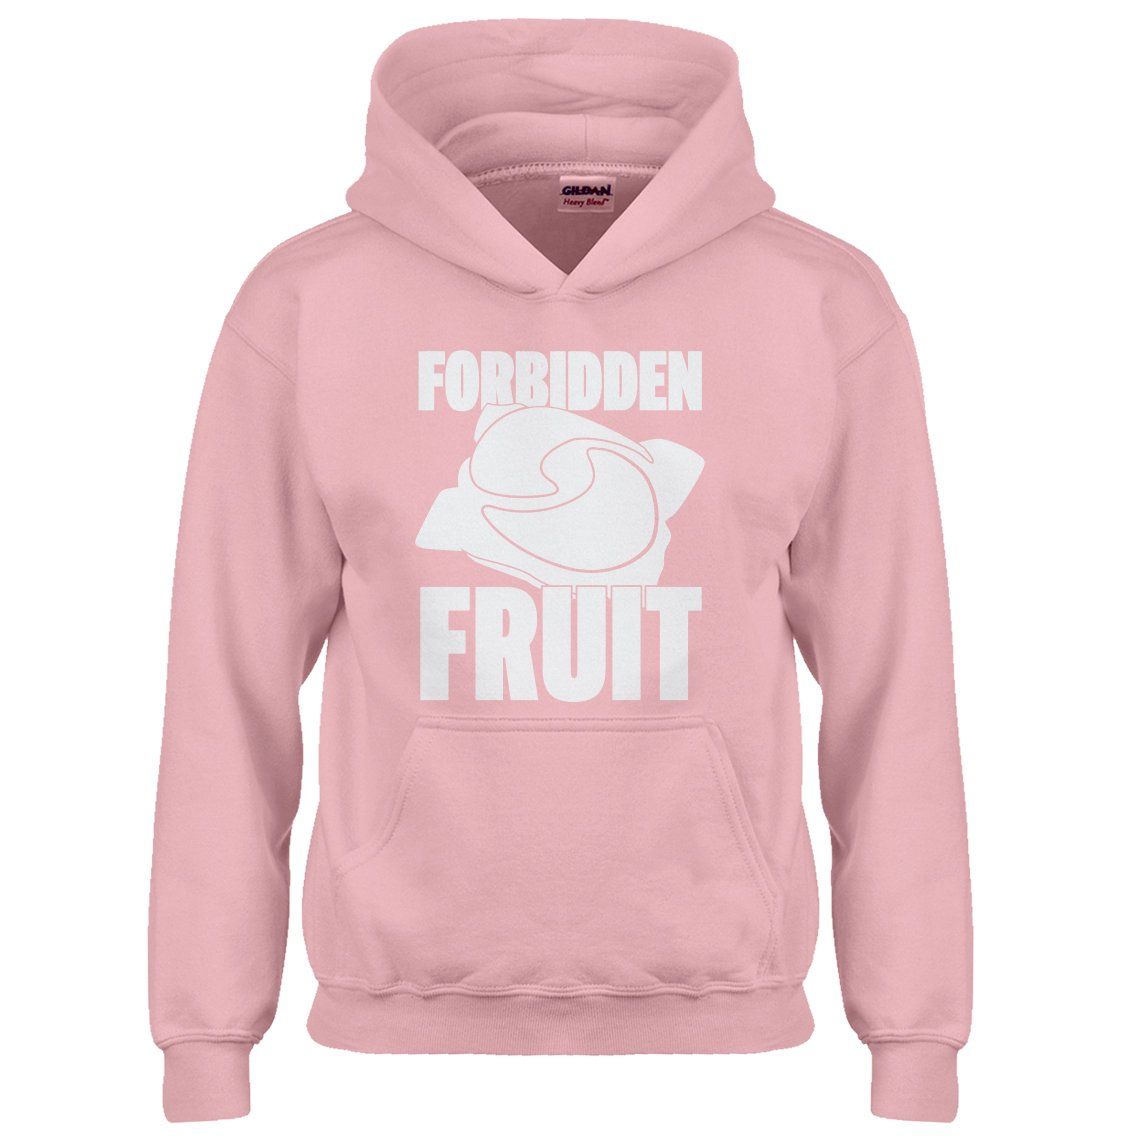 Indica Plateau Youth Forbidden Fruit Kids Hoodie